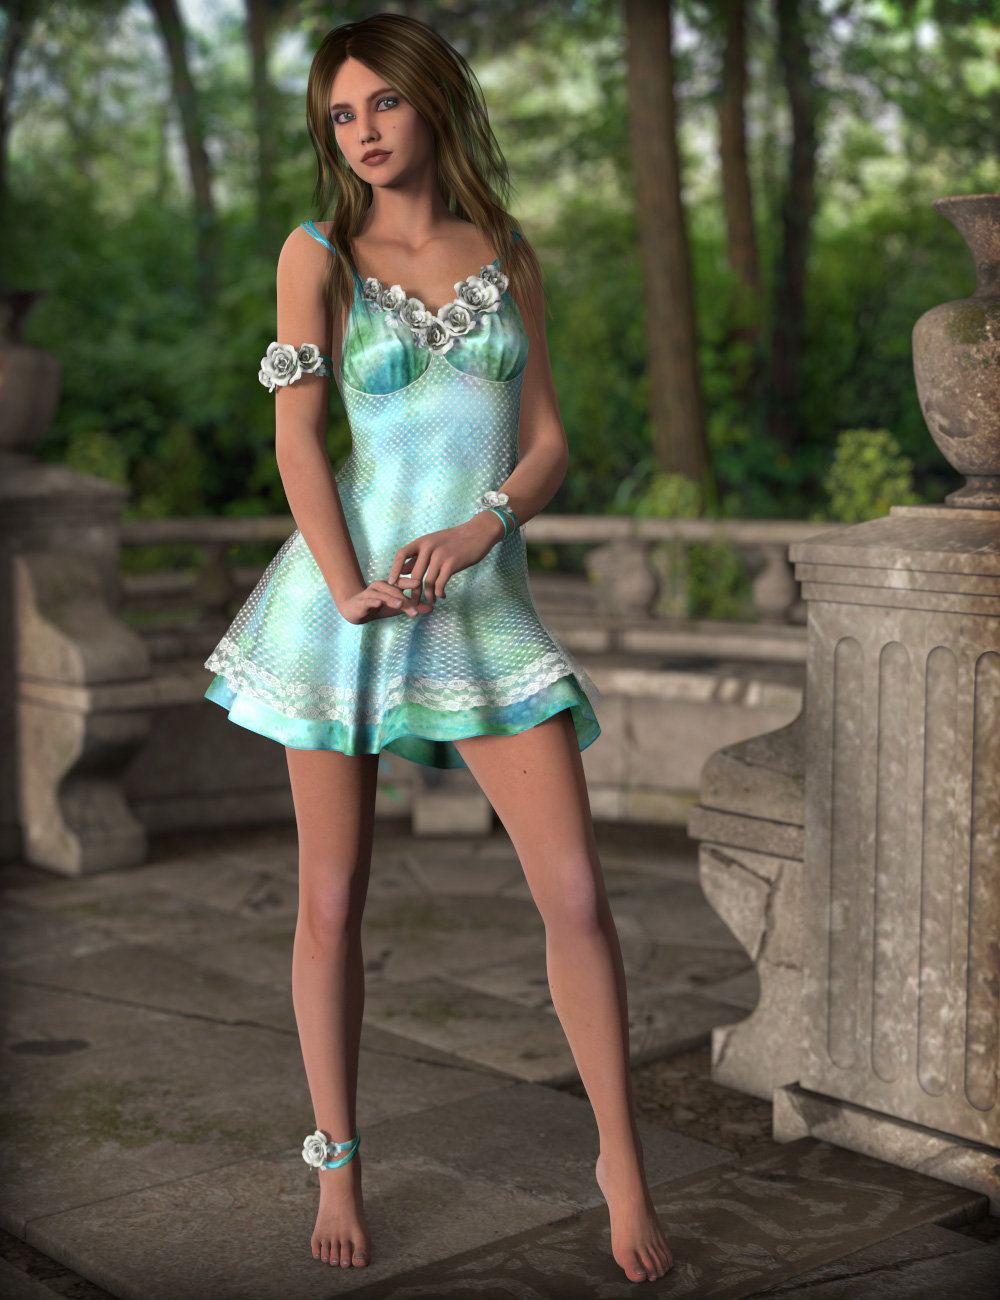 Summer Melody for Song of Summer Outfit by: esha, 3D Models by Daz 3D